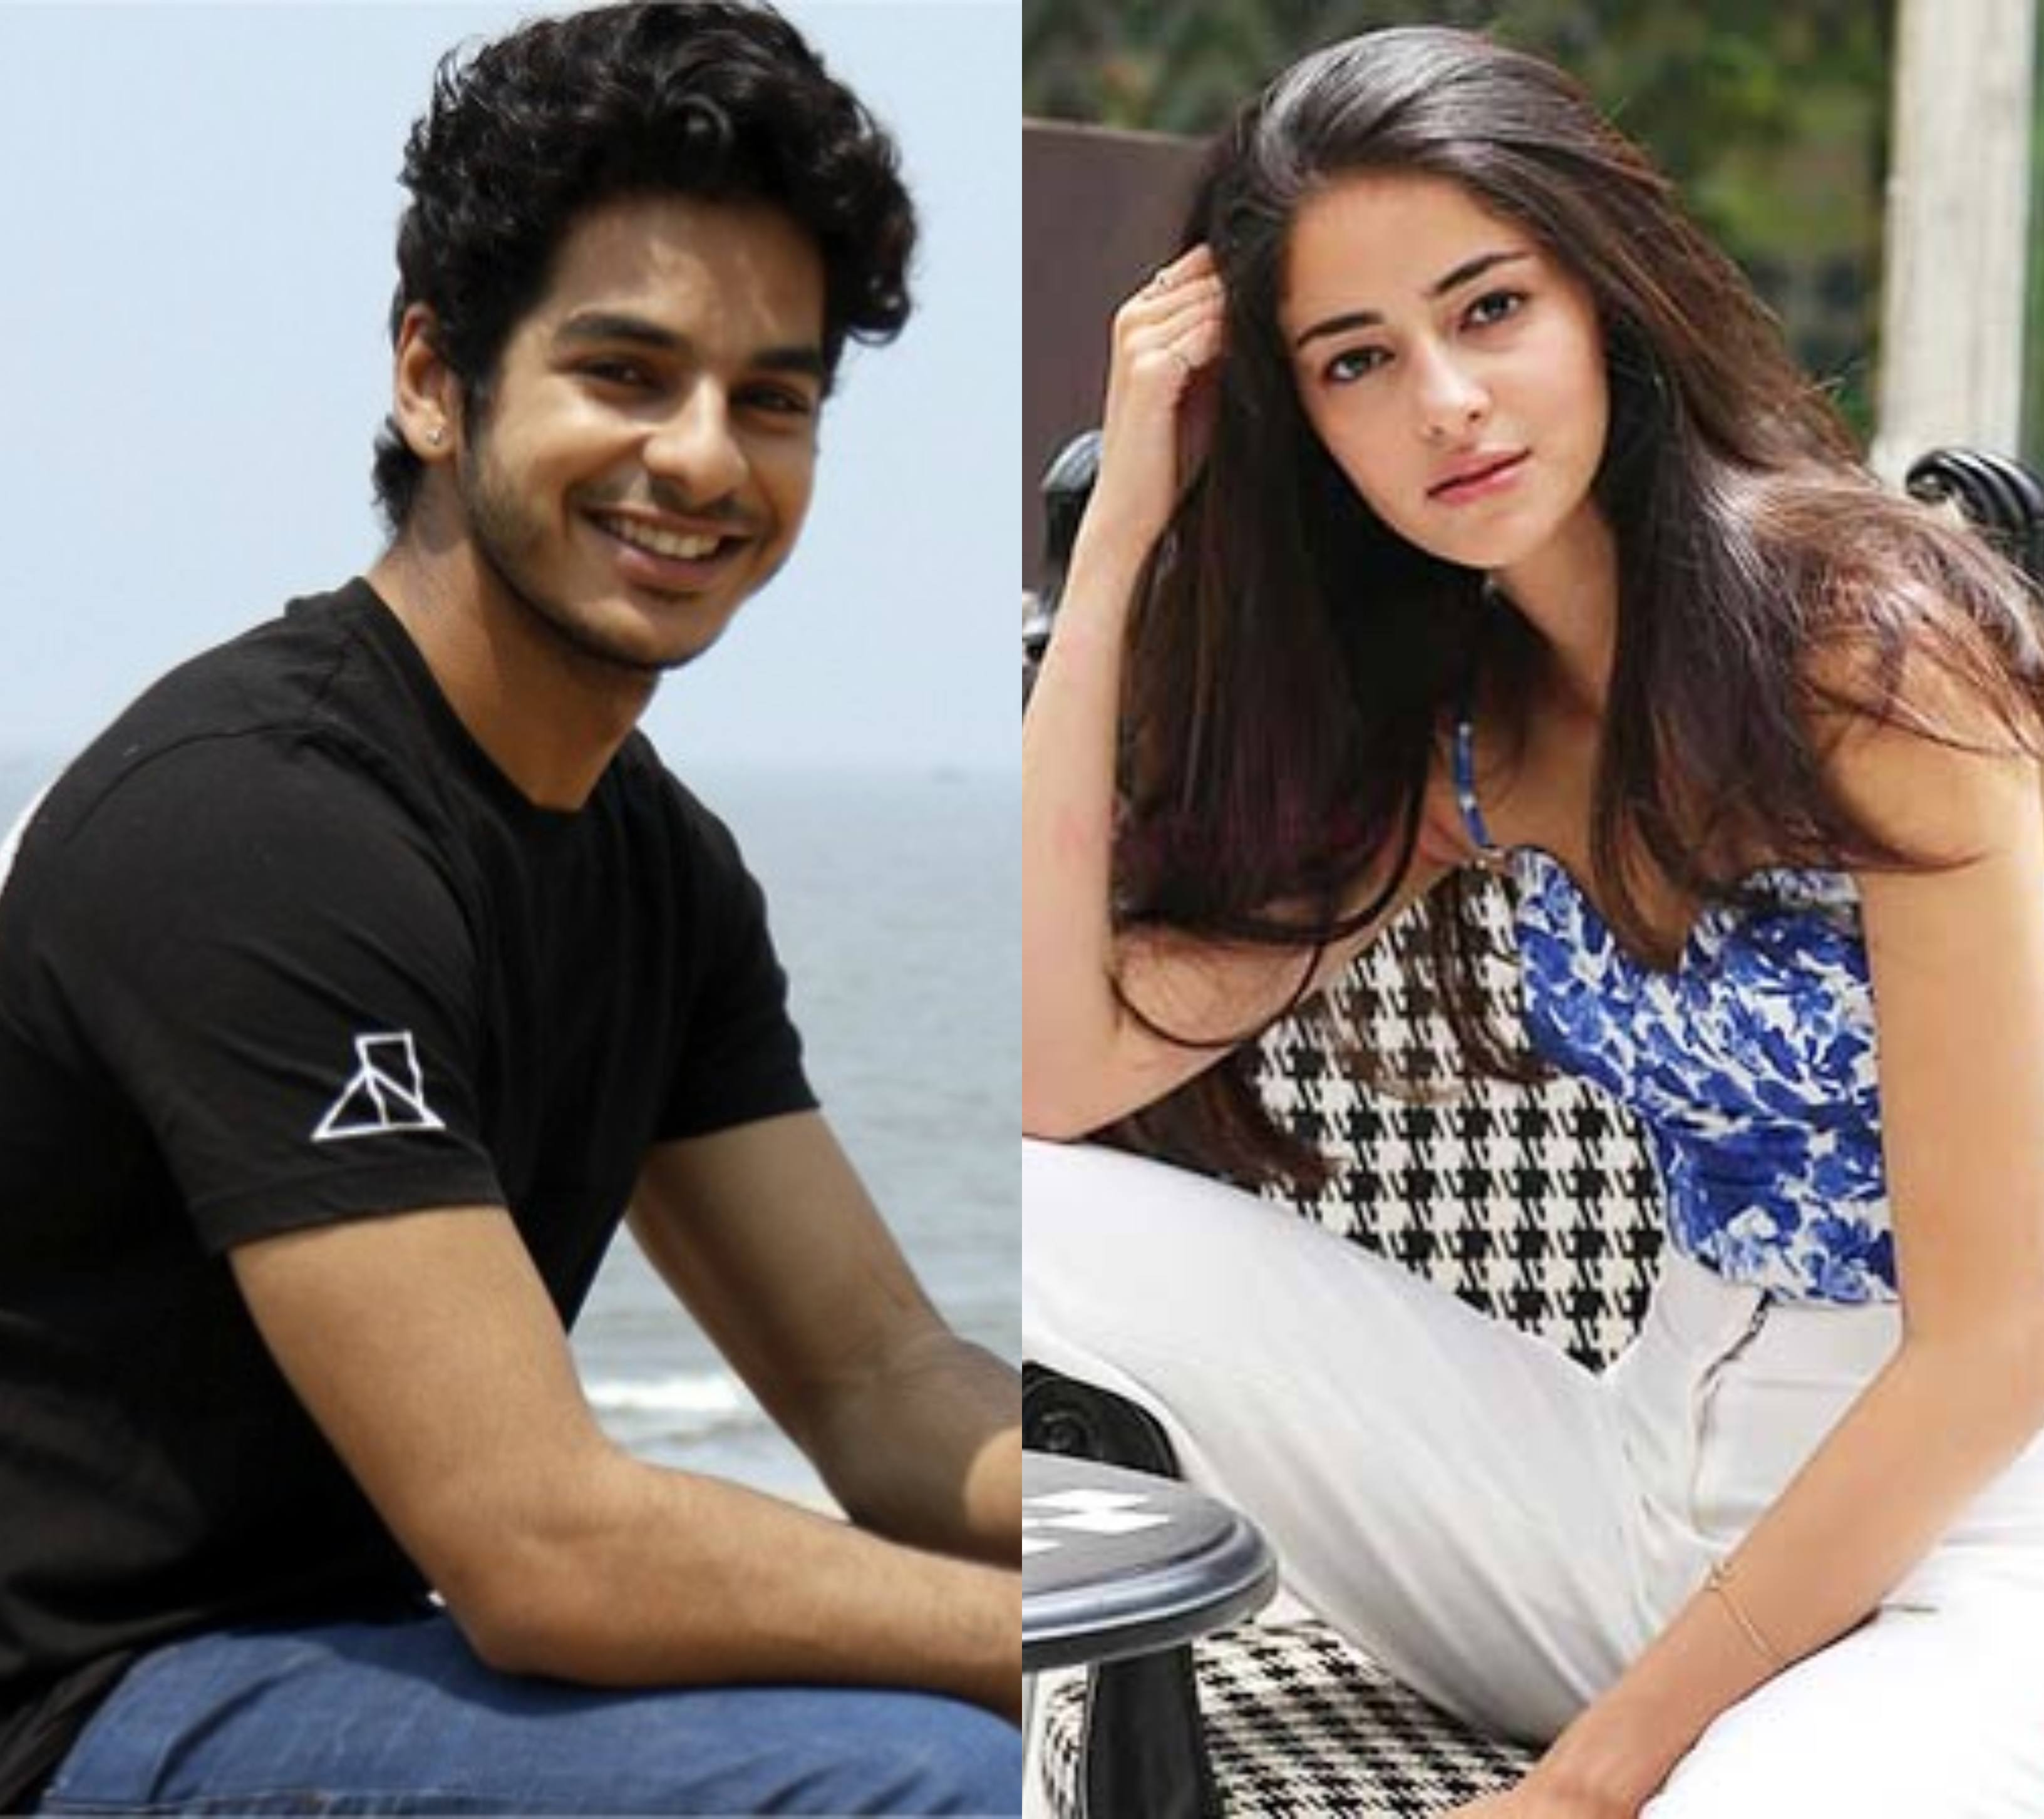 Ishaan Khatter To Star Opposite Ananya Panday In His Next